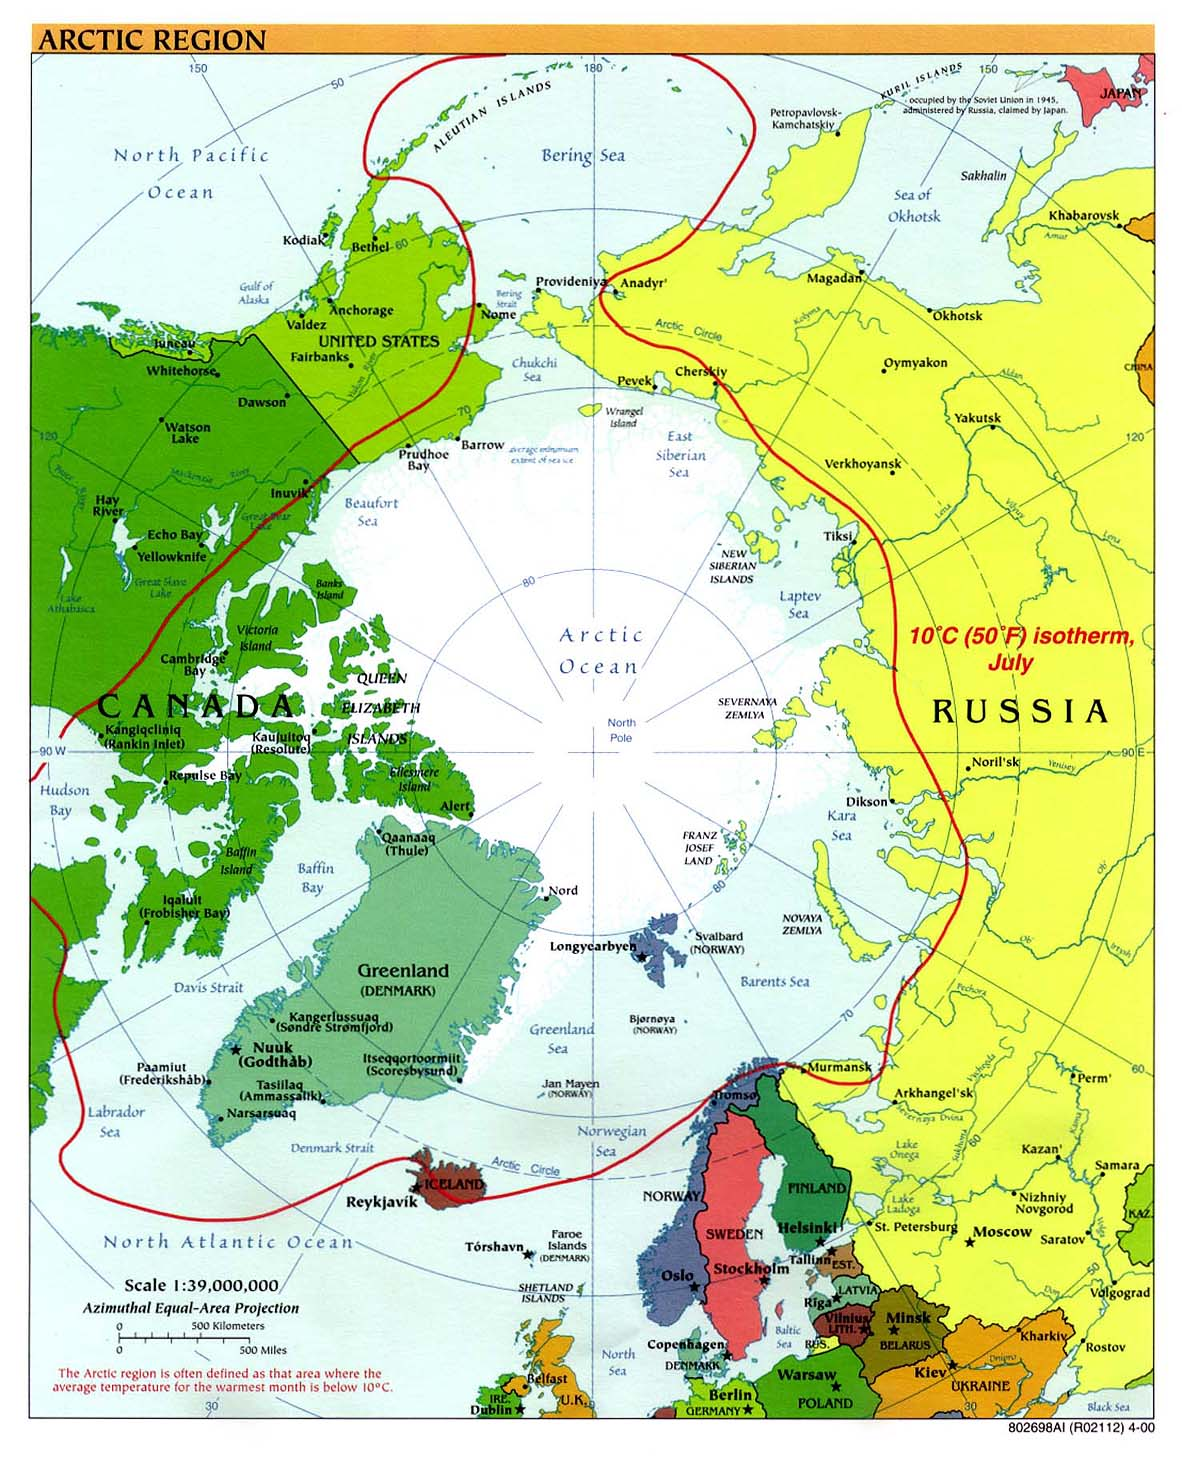 Arctic political map 2000